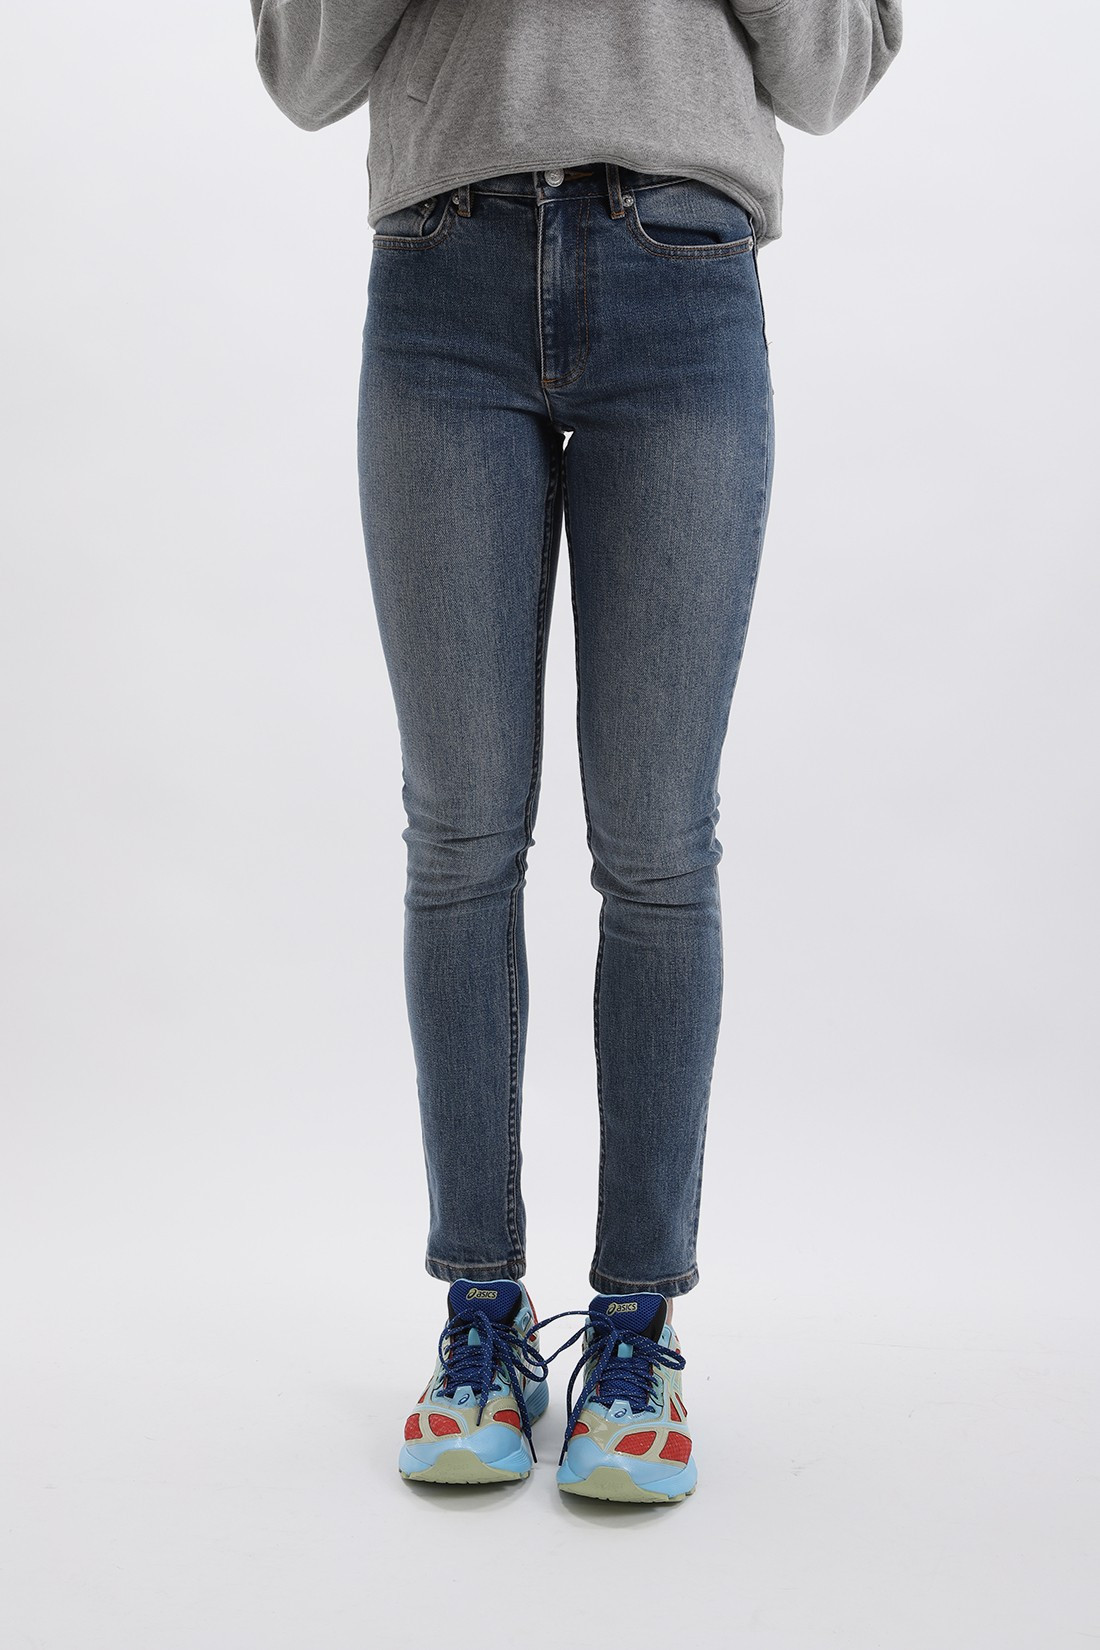 A.P.C. FOR WOMAN / Jean droit Indigo